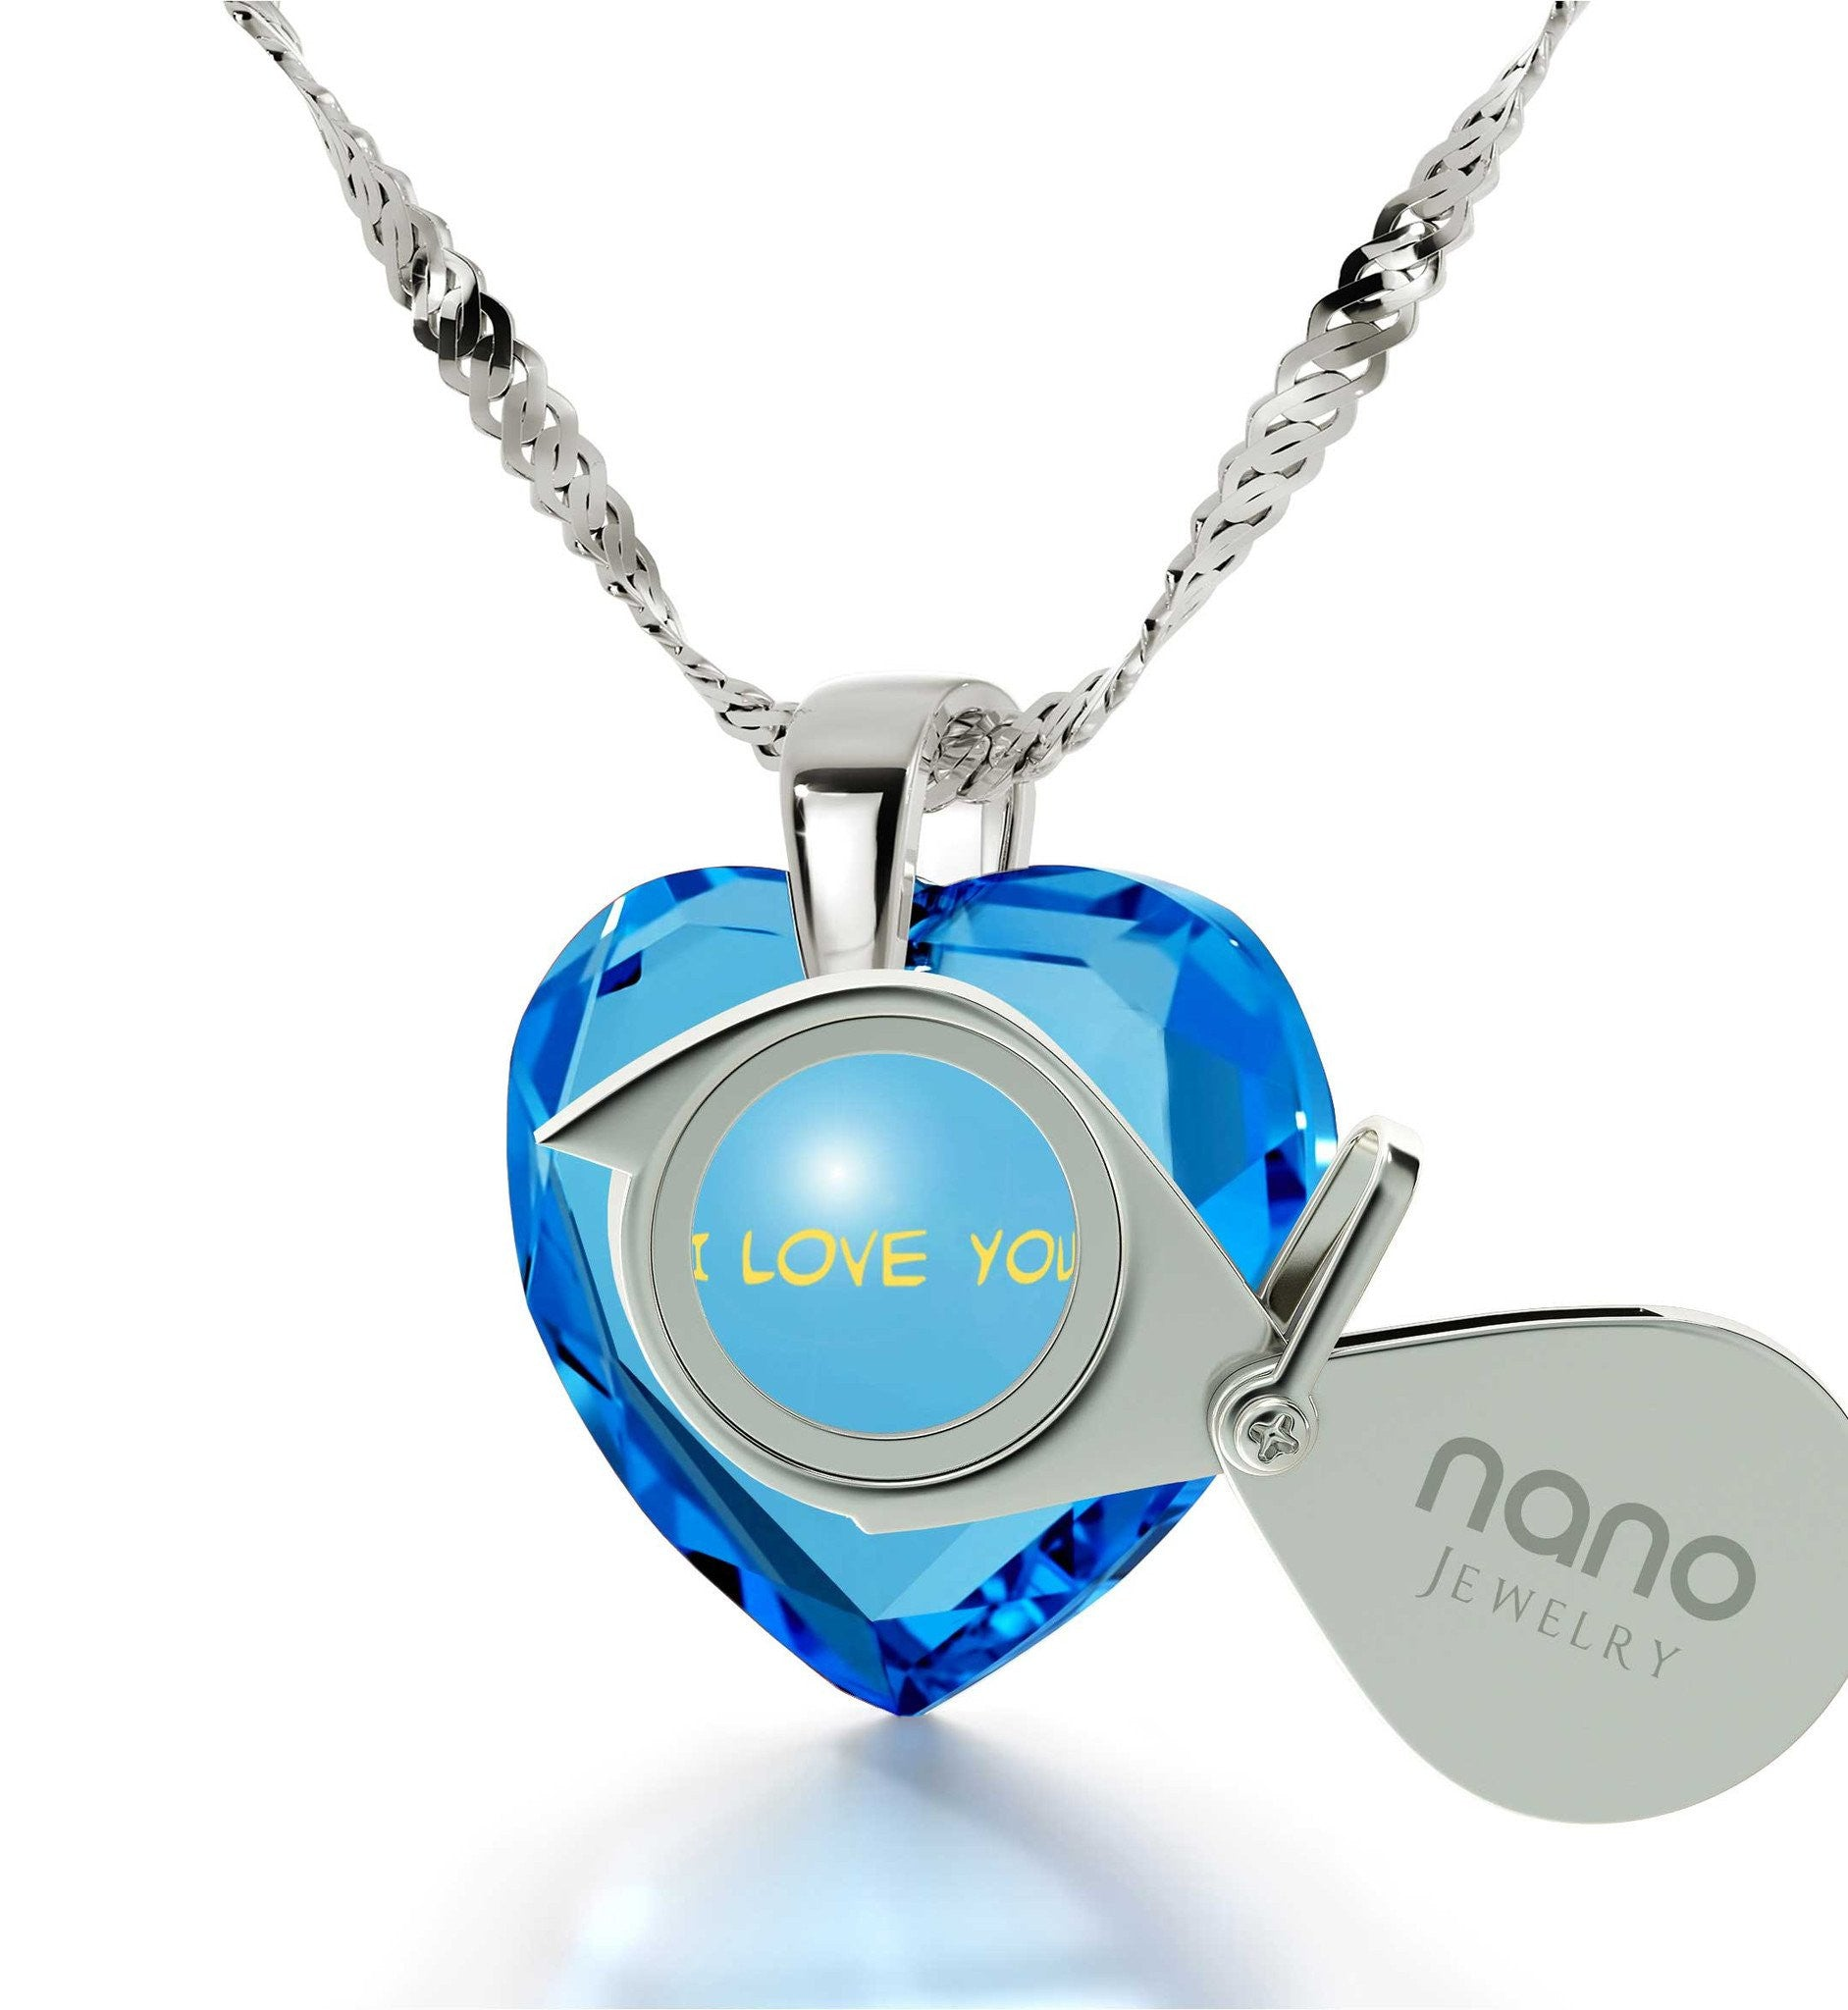 """Good Valentines Day Gifts for Girlfriend, Meaningful Necklaces, Best Jewelry Websites, Xmas Ideas for Her by Nano"""